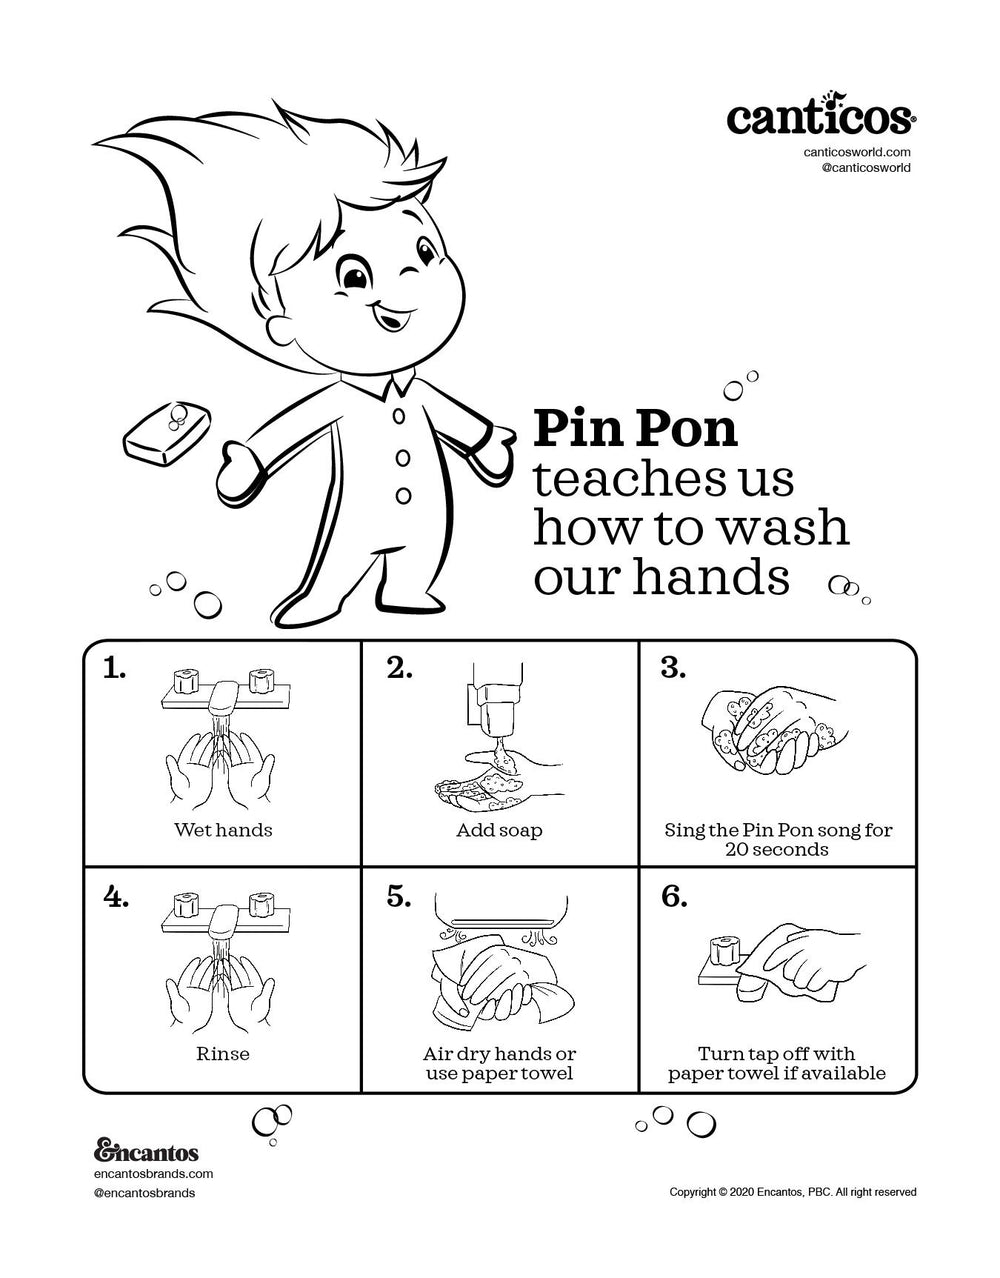 Pin Pon Wash your hands - Free Activity Sheet